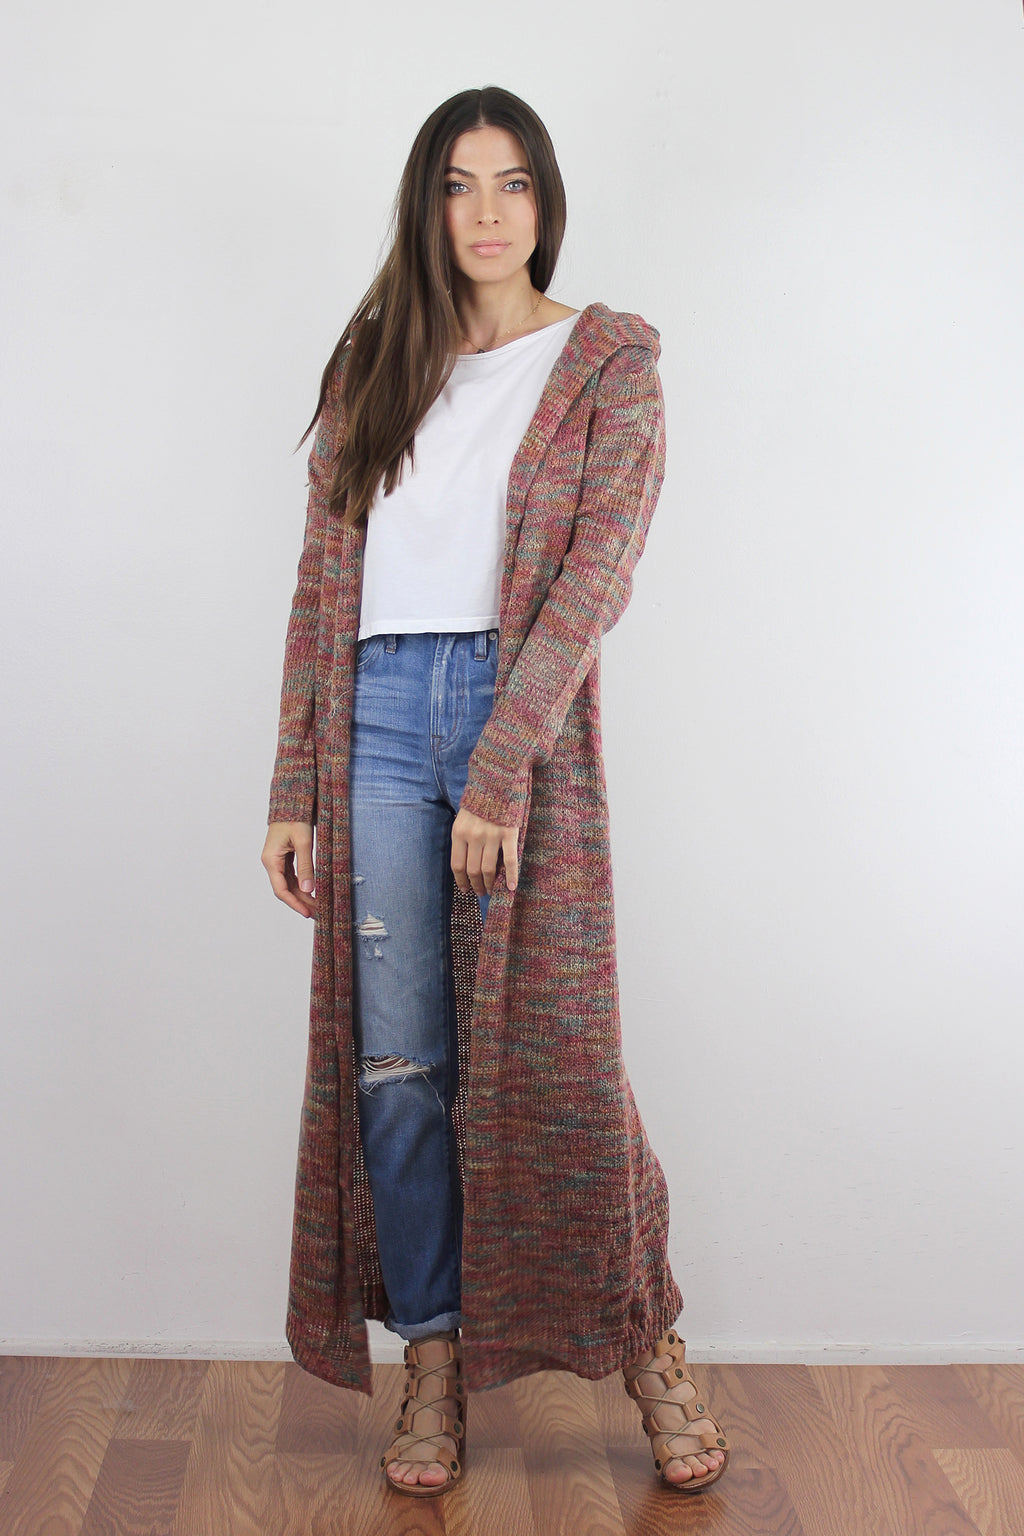 Multi color, long hooded cardigan.